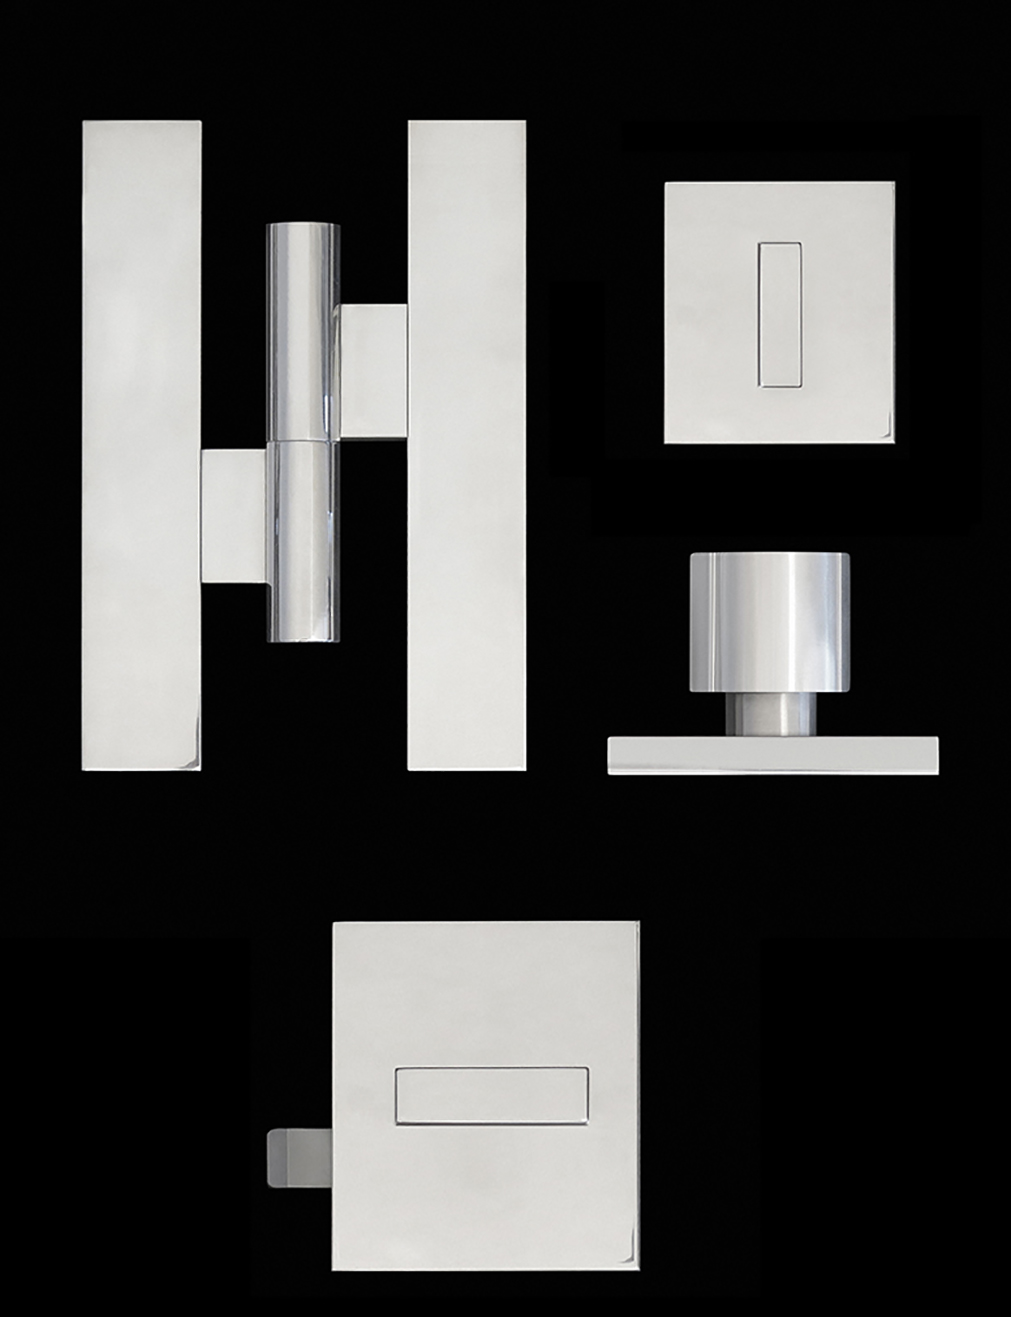 Modern hinges and door hardware in nickel finish.